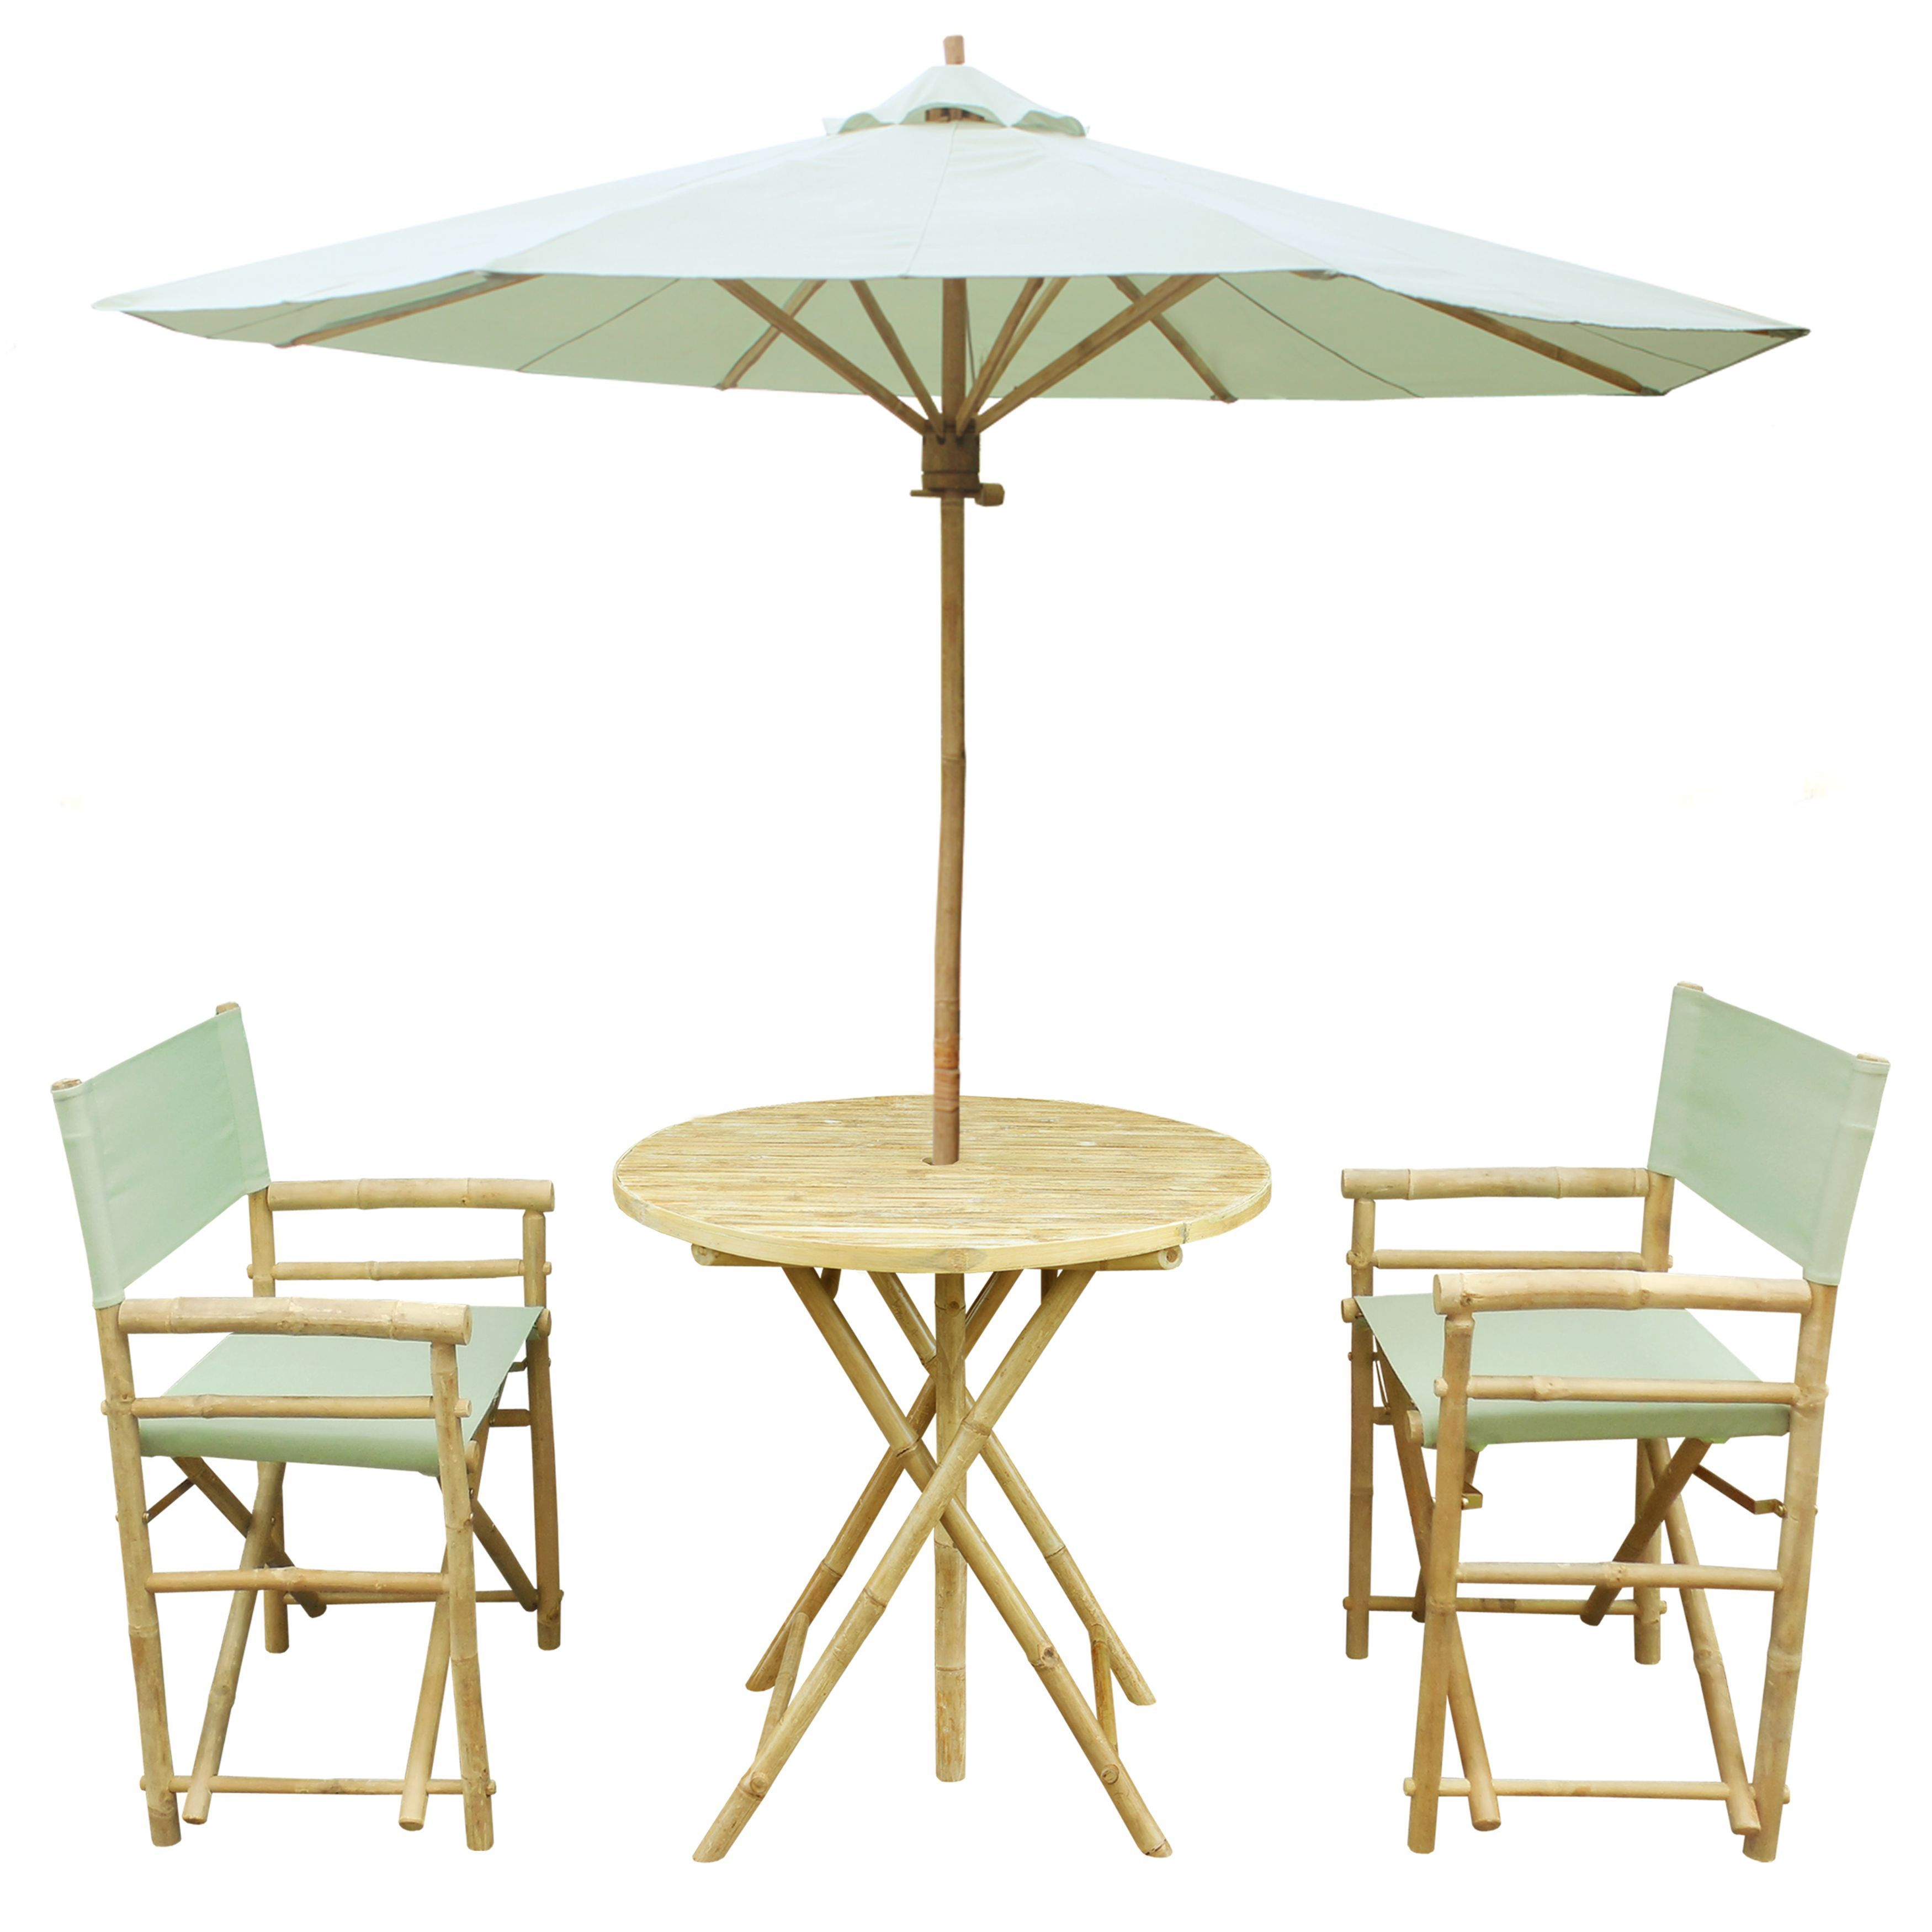 Zew blue white red tan black green yellow bamboo handcrafted round patio set pack of 4 w celadon umbrella patio furniture